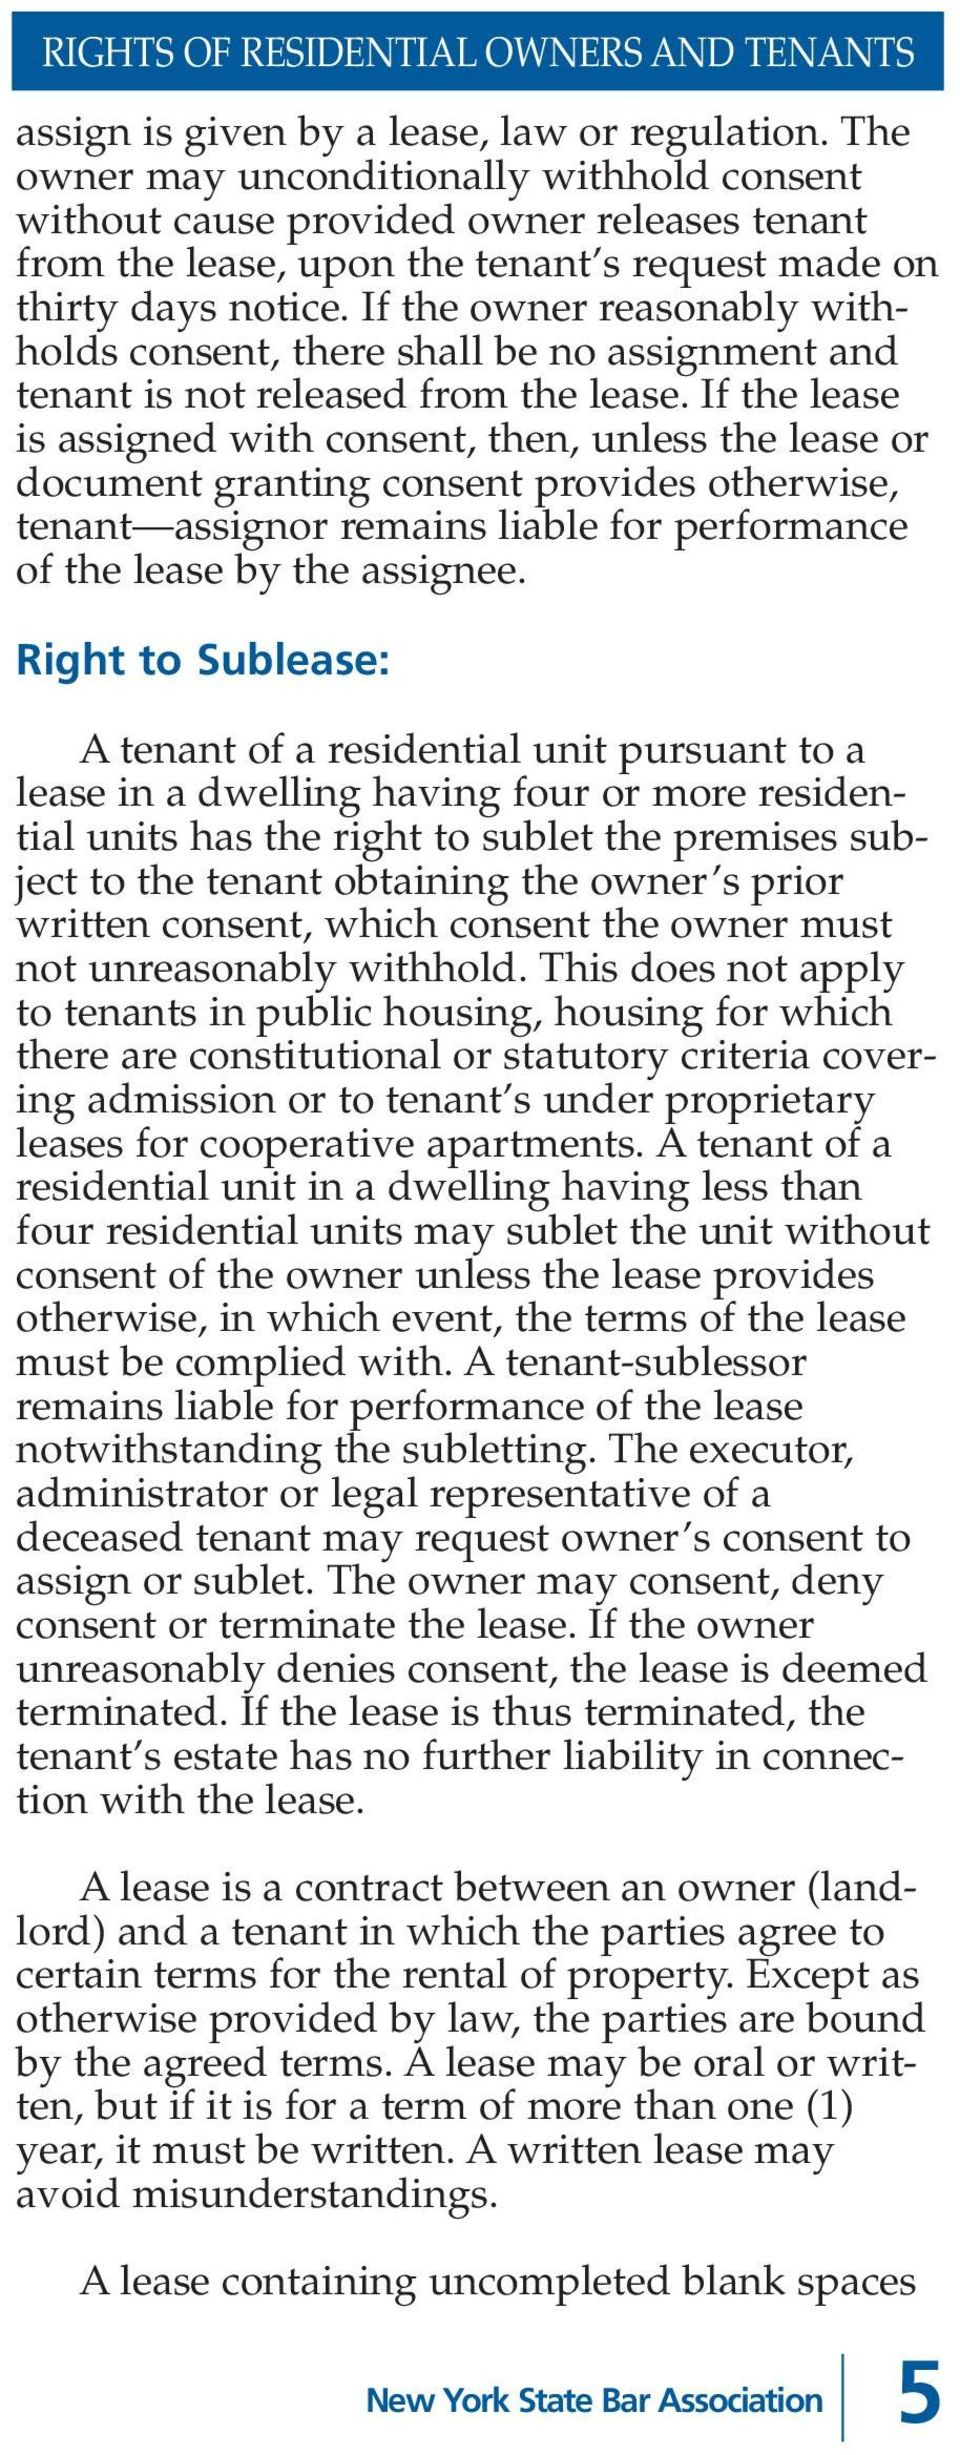 If the owner reasonably withholds consent, there shall be no assignment and tenant is not released from the lease.